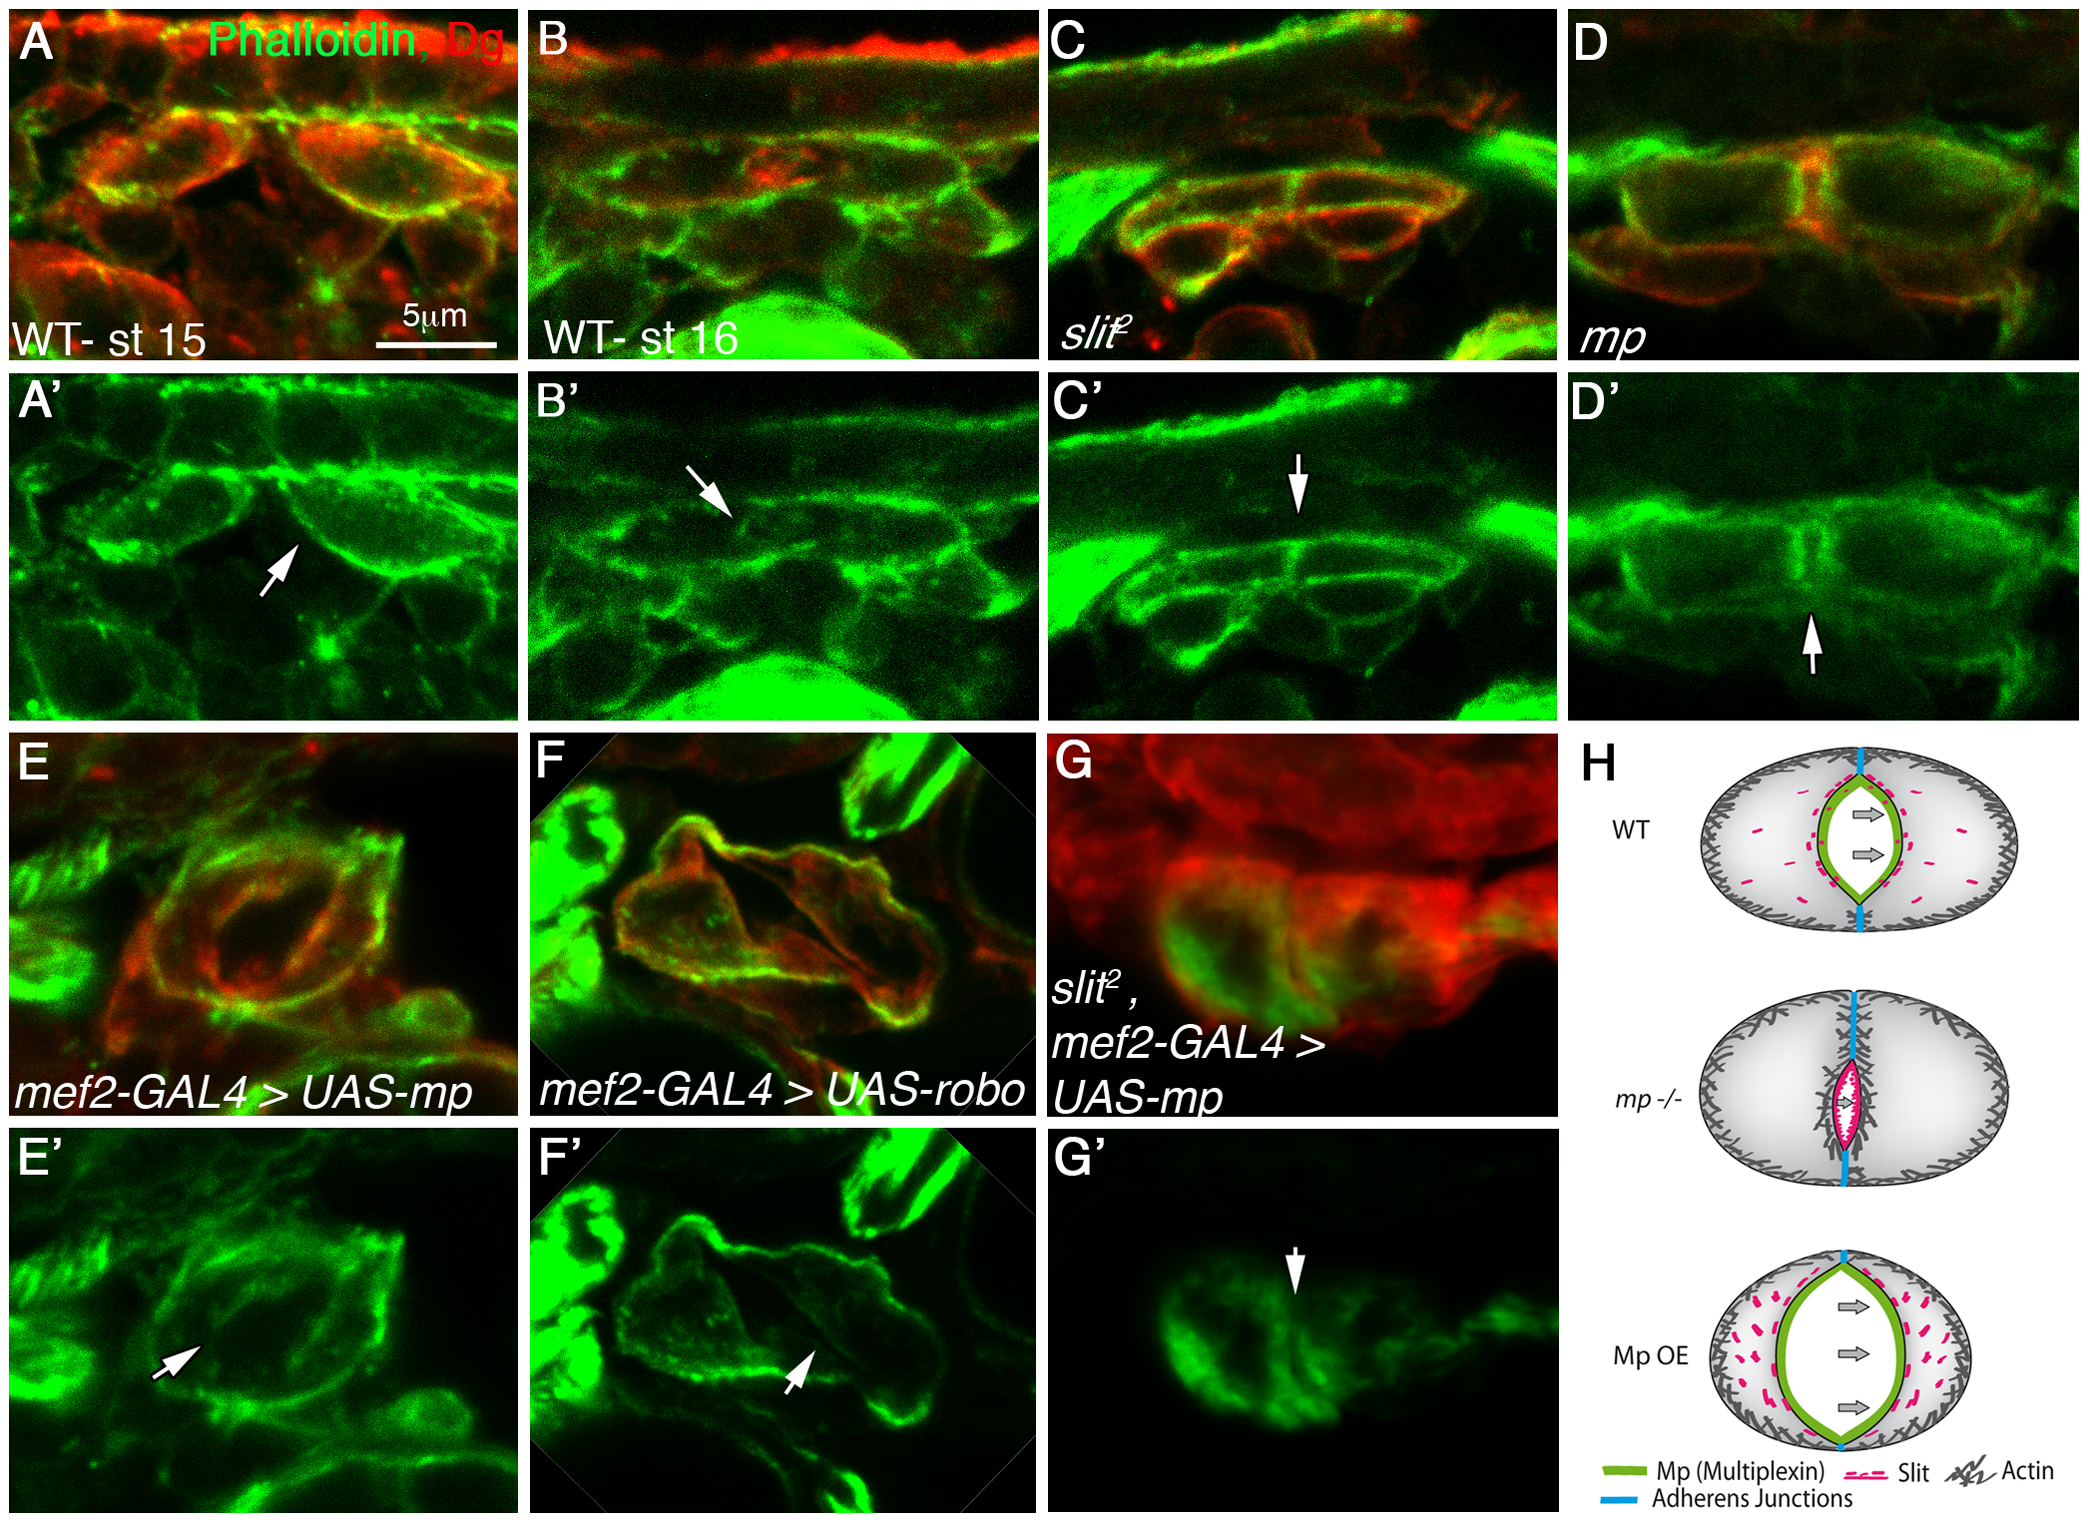 Mp activity reduces F-actin levels at the cardiac luminal membrane in a <i>slit</i> dependent manner.